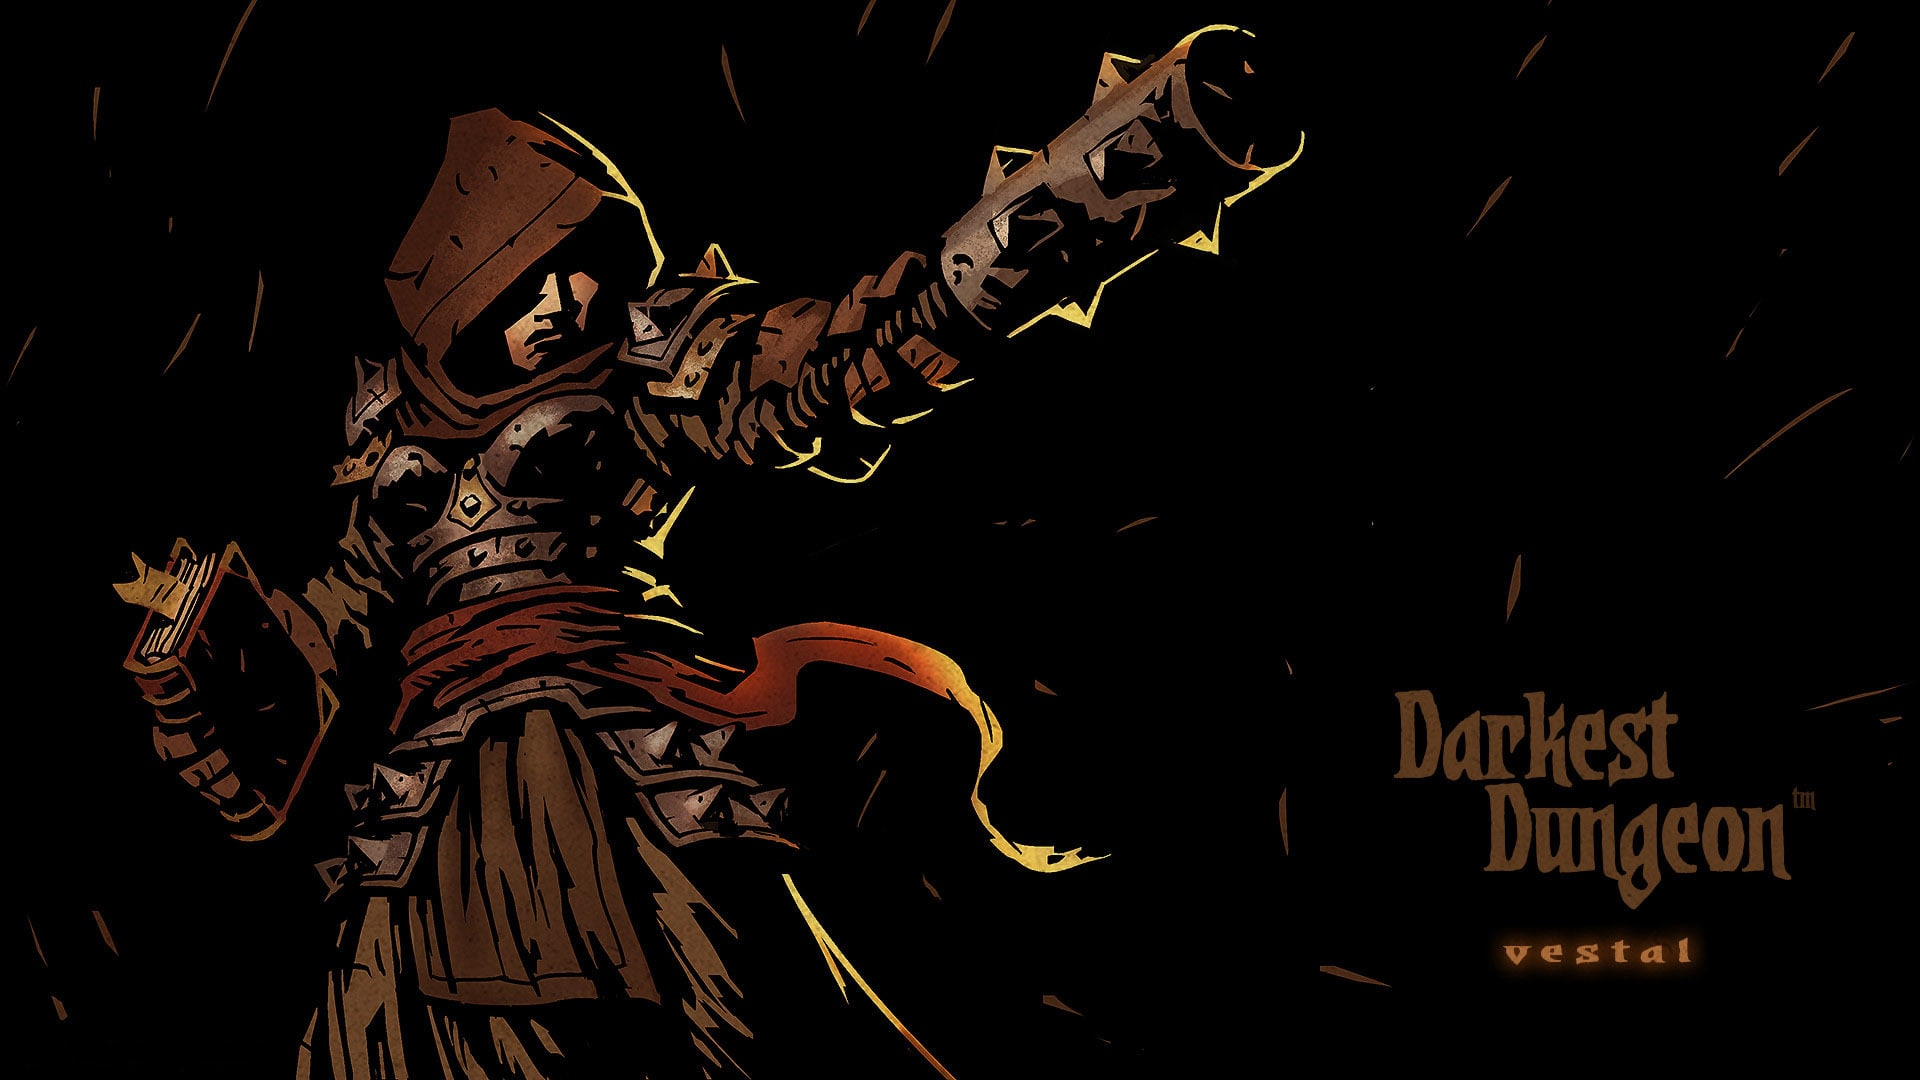 Darkest Dungeon: Vestal Wallpapers